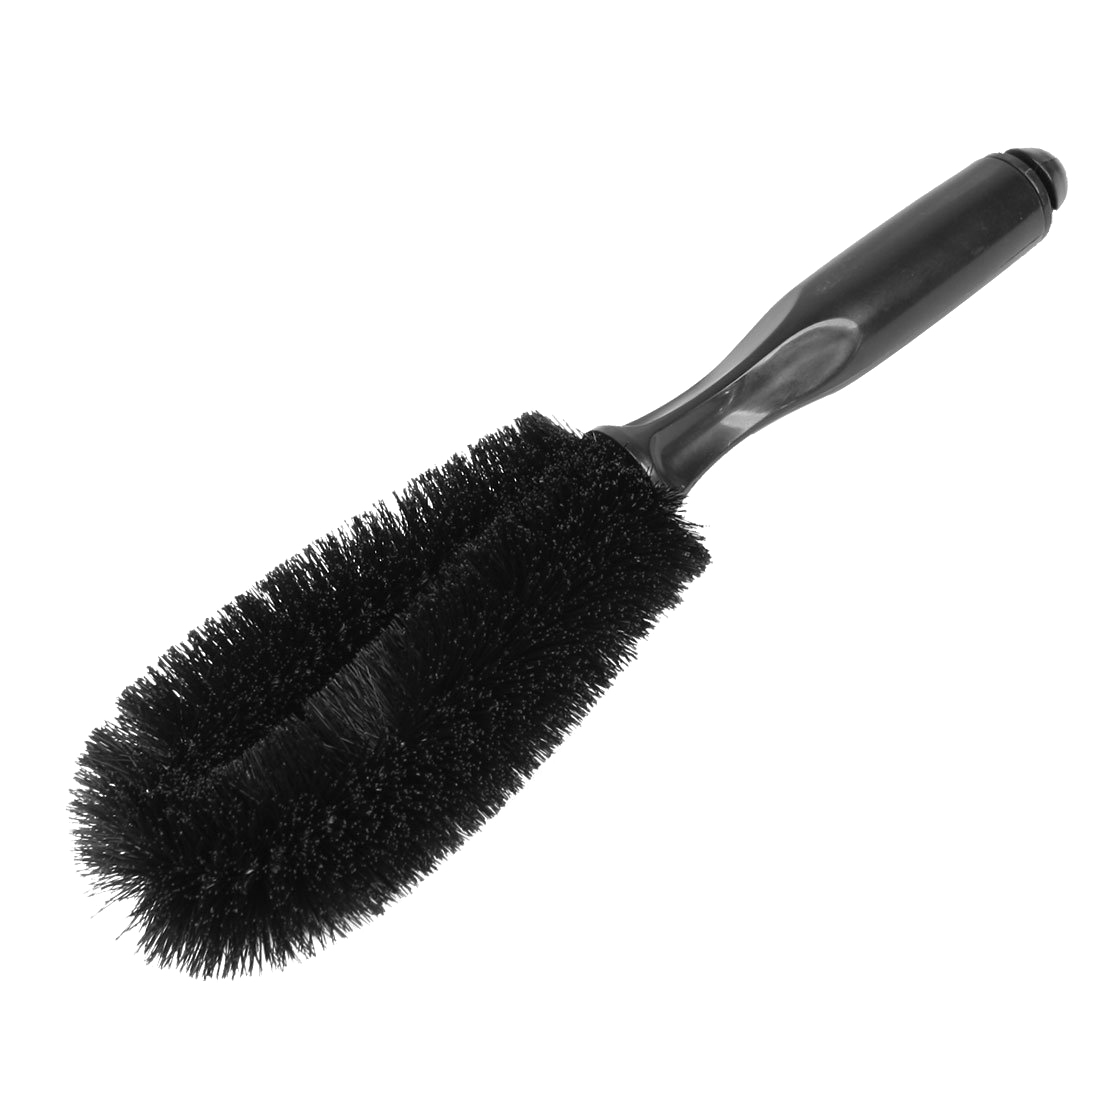 Black Truck Car Auto Wheel Tire Rim Brush Wash Cleaning Tool 10.6 Long